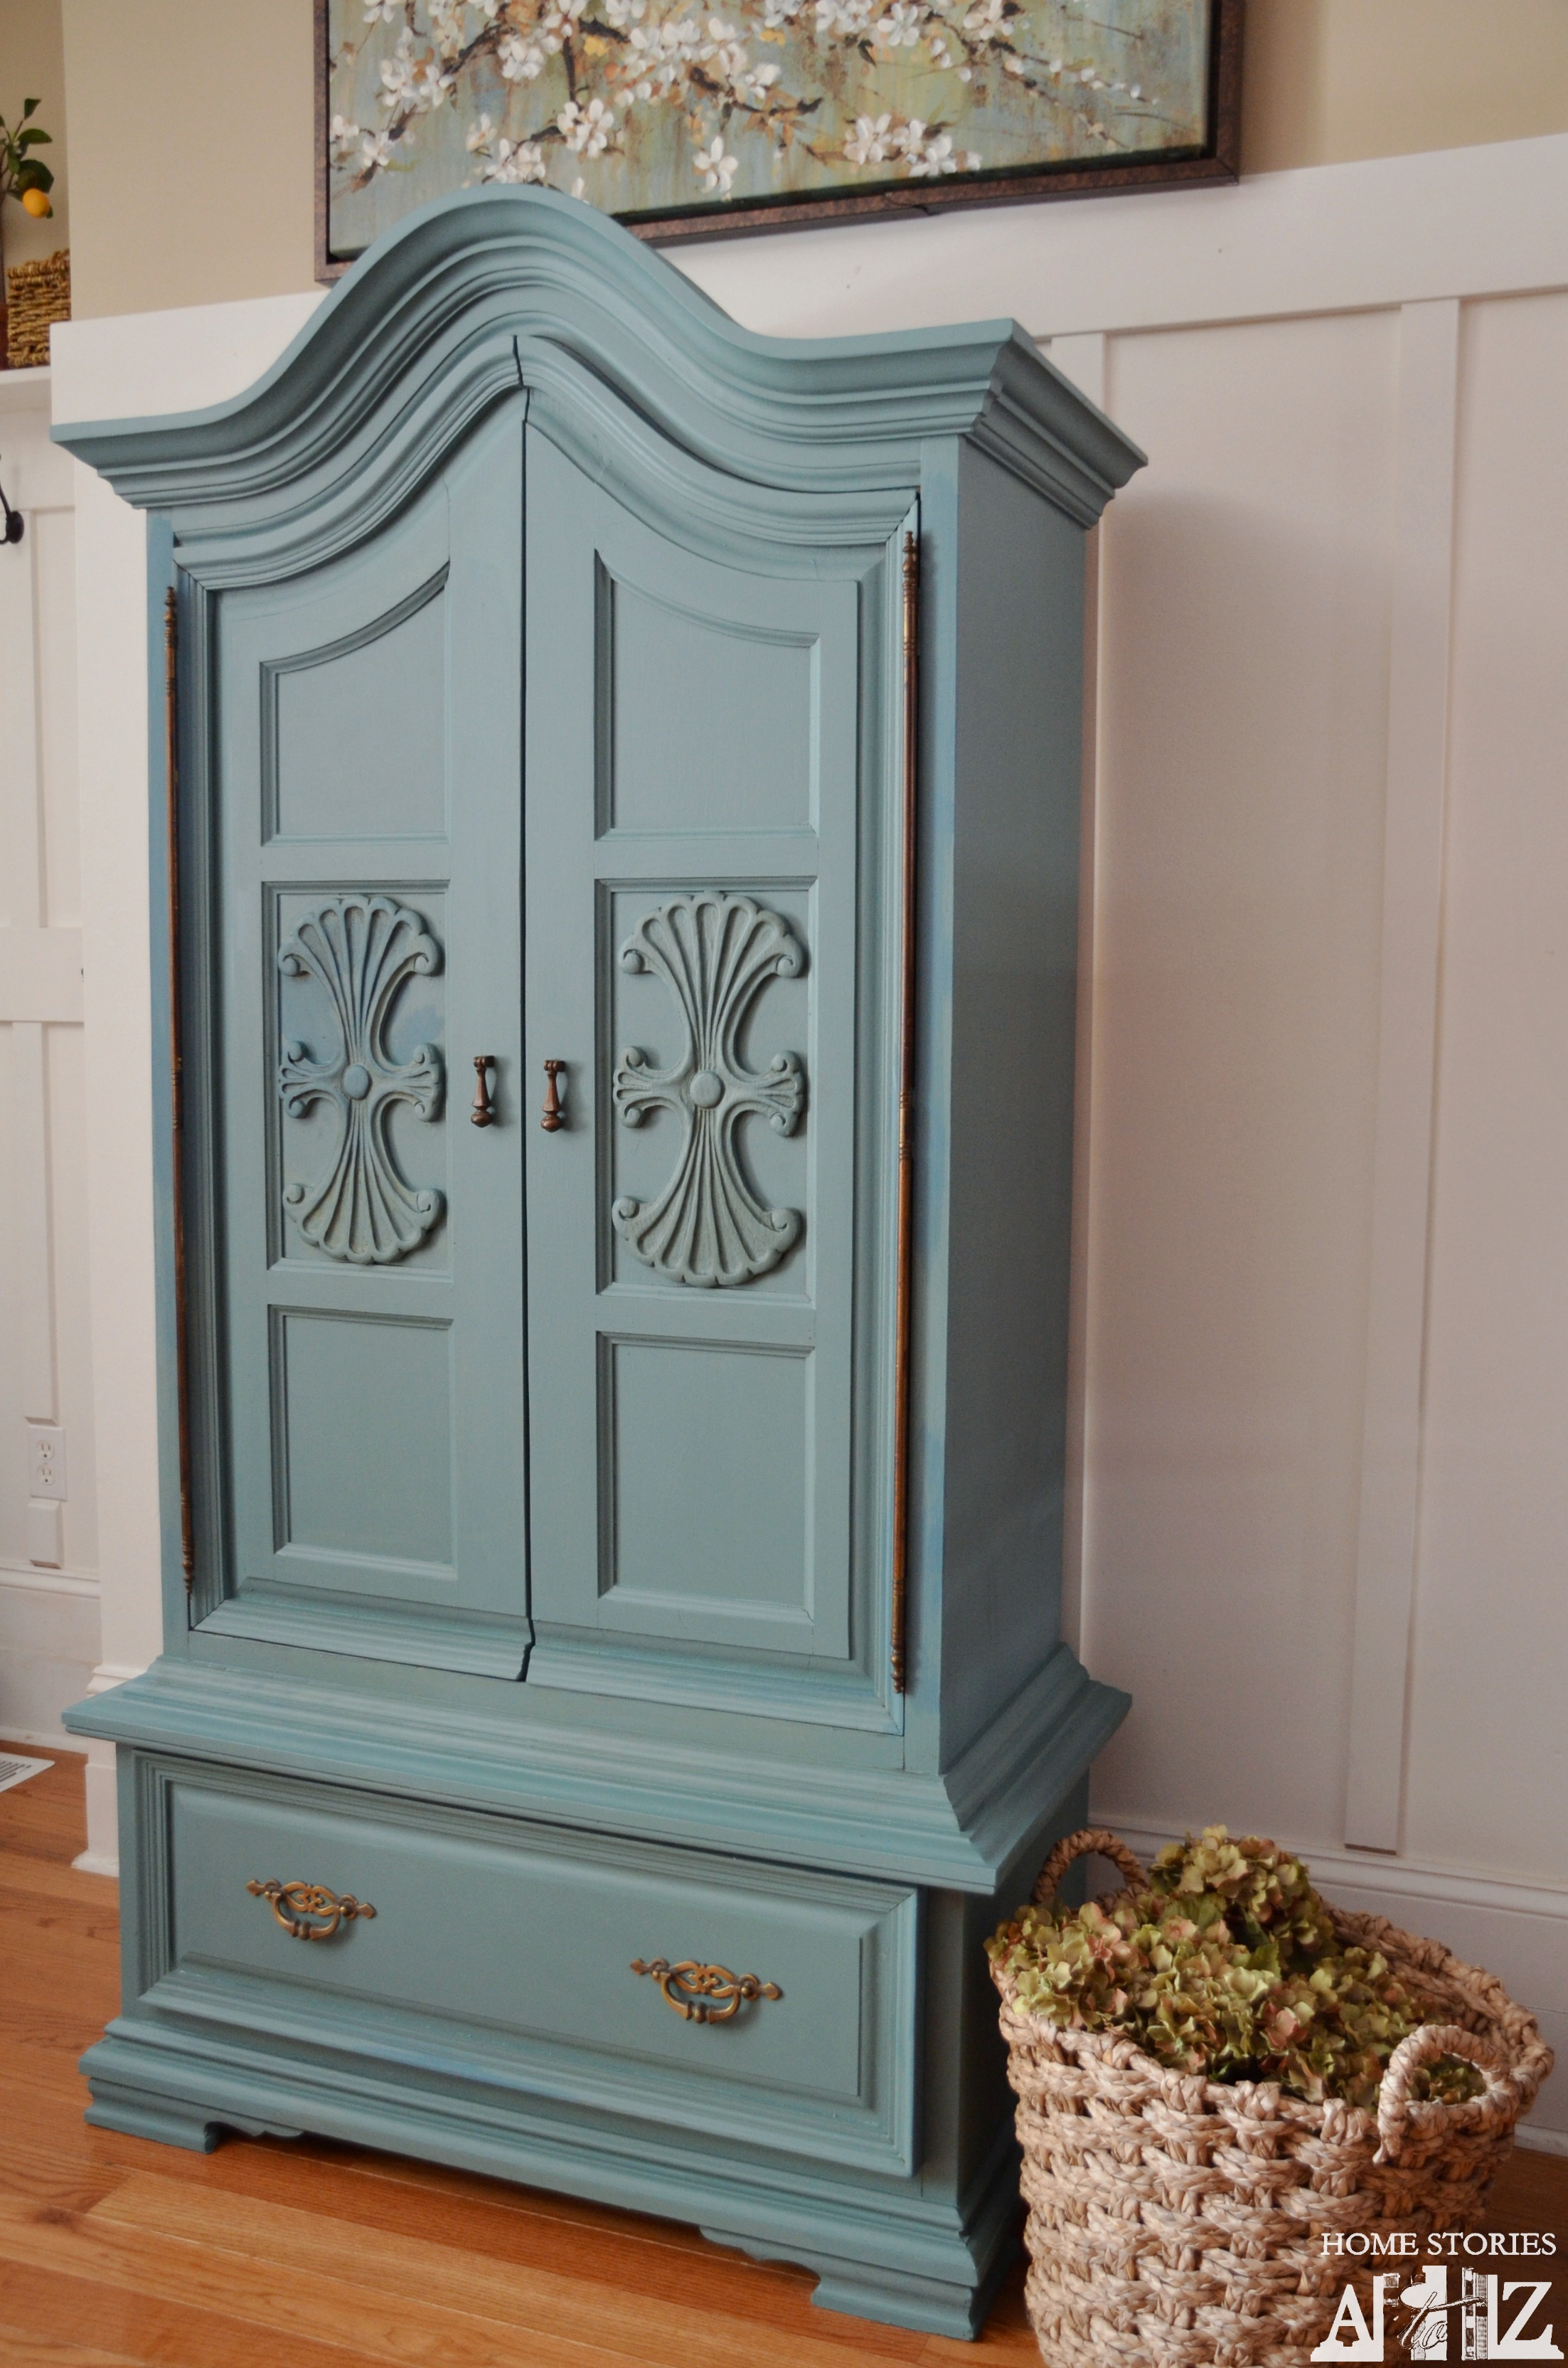 Genial Painted Blue Armoire